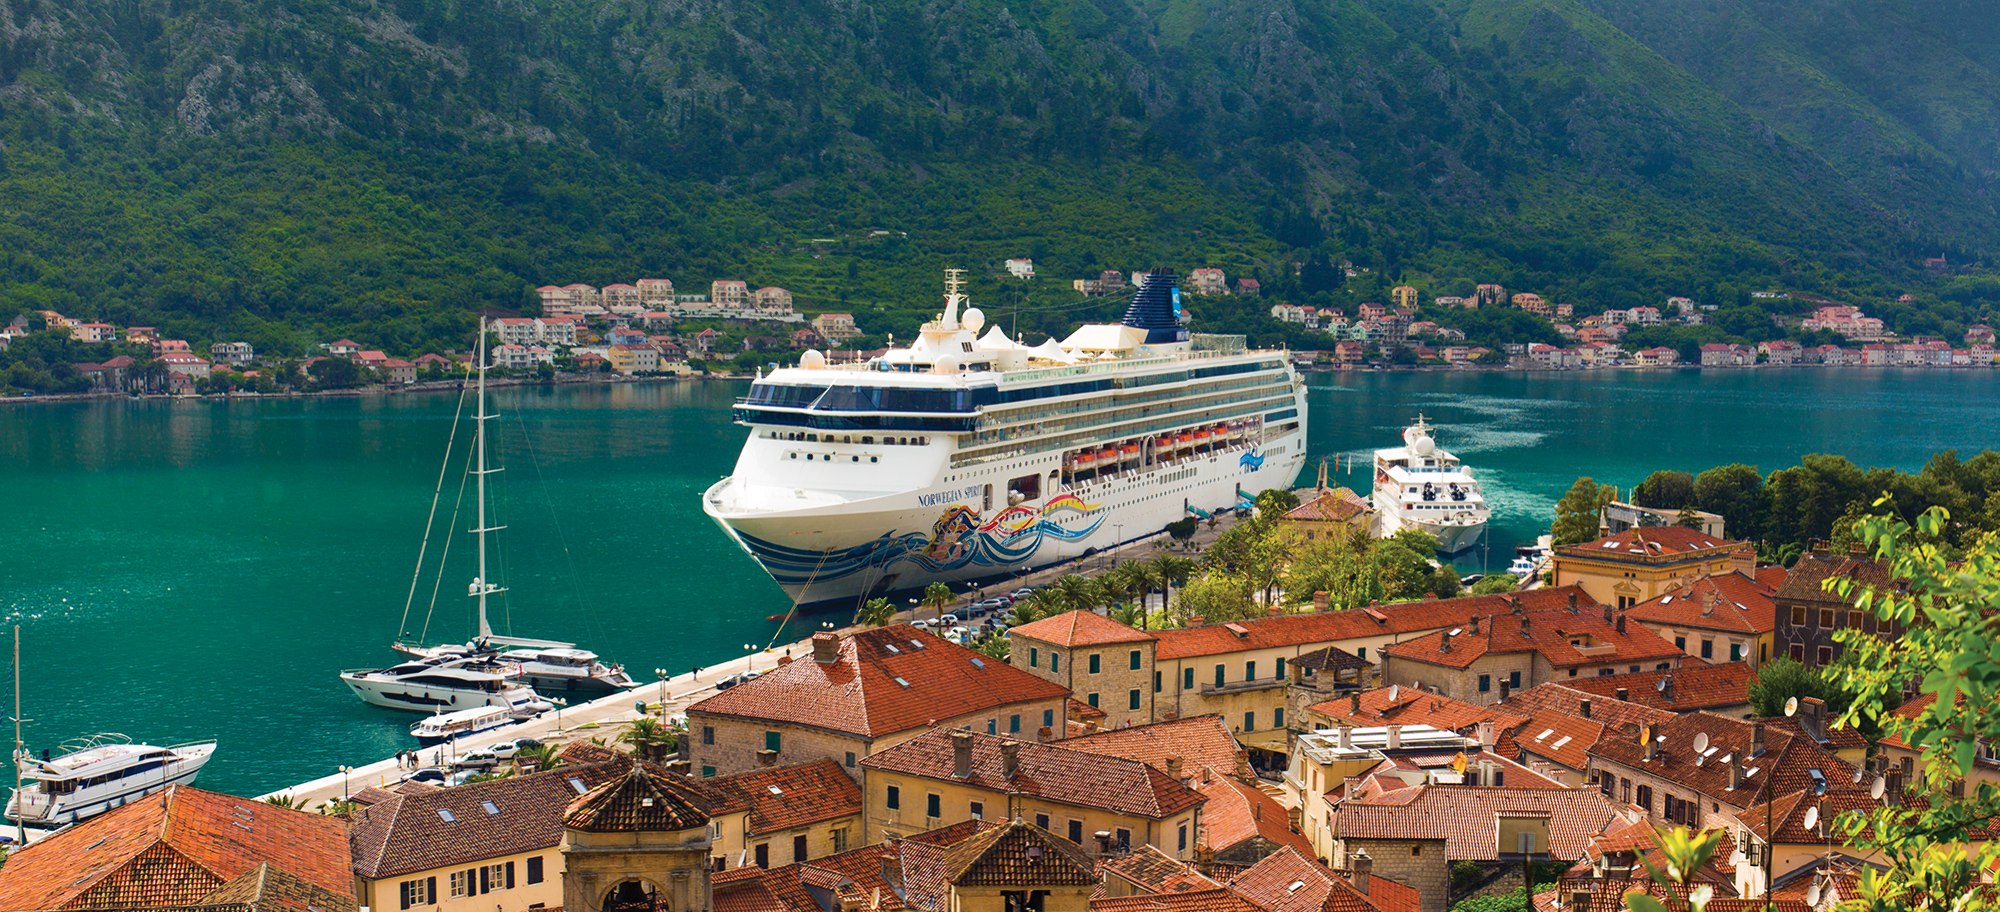 Air-Inclusive Cruise Packages to the Mediterranean